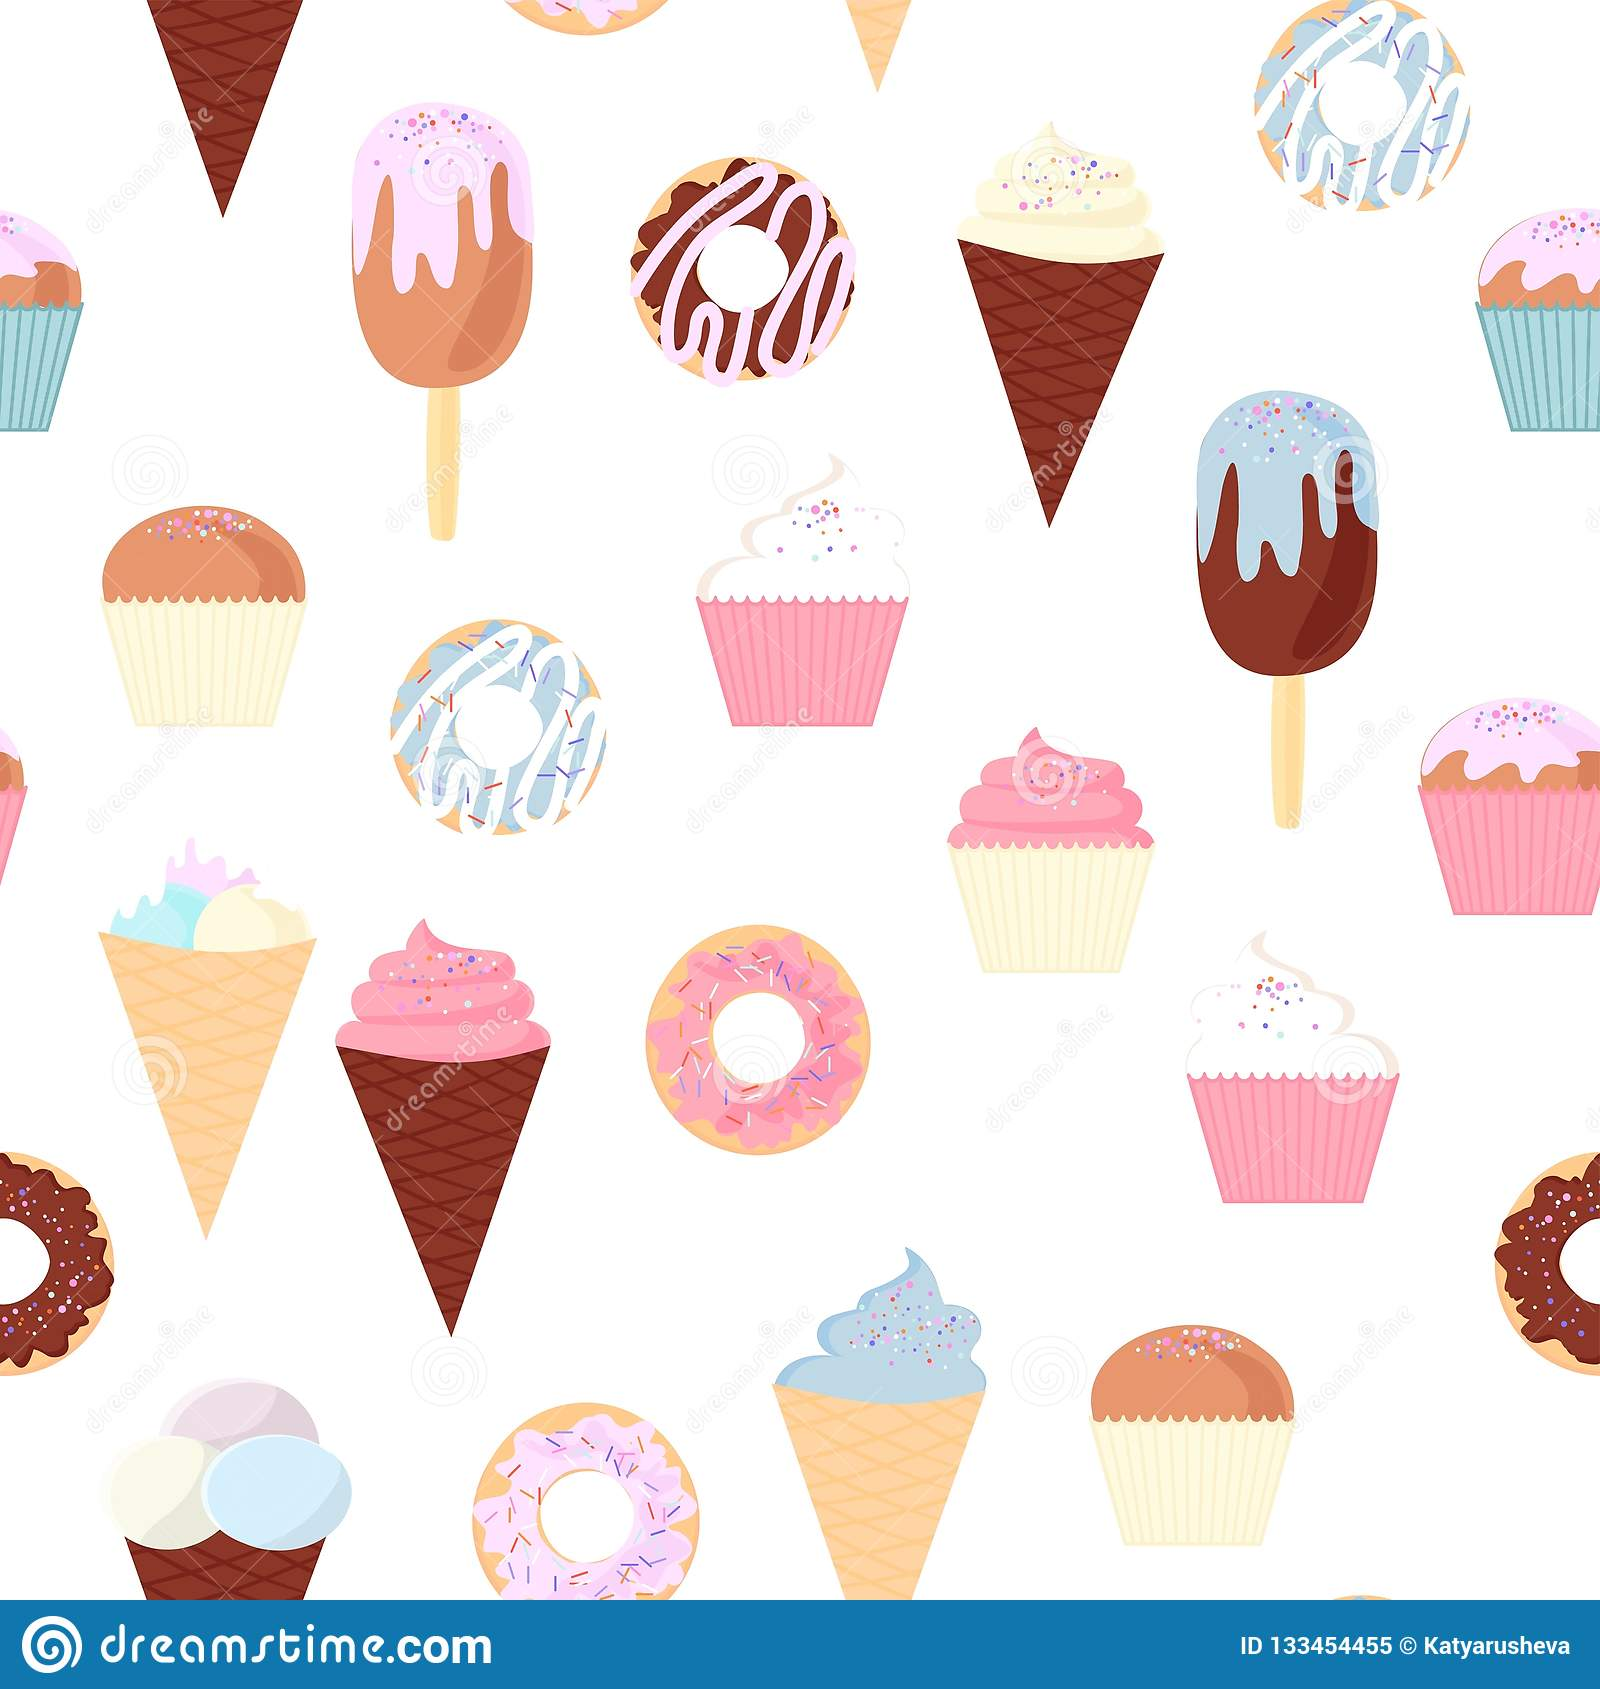 Pattern From A Set Of Colorful Delicious Cupcakes Cakes Desserts Ice Cream And Donuts Cupcake Icons Flat Style Vector